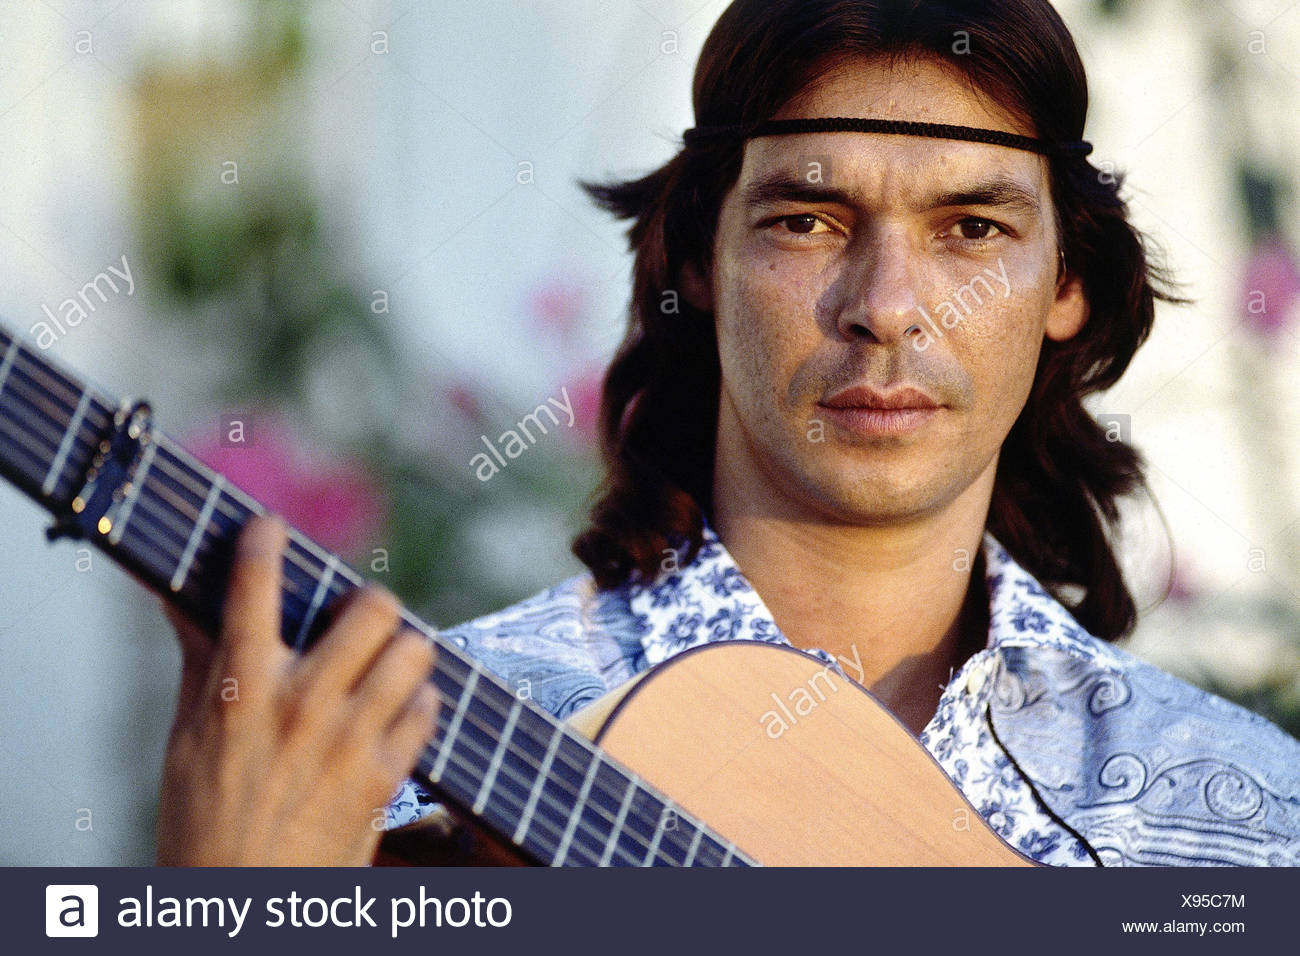 Gipsy Kings, French music group, Canut Reyes, a member of the band, with guitar, portrait, Arles, 1988, Additional-Rights-Clearances-NA - Stock Image